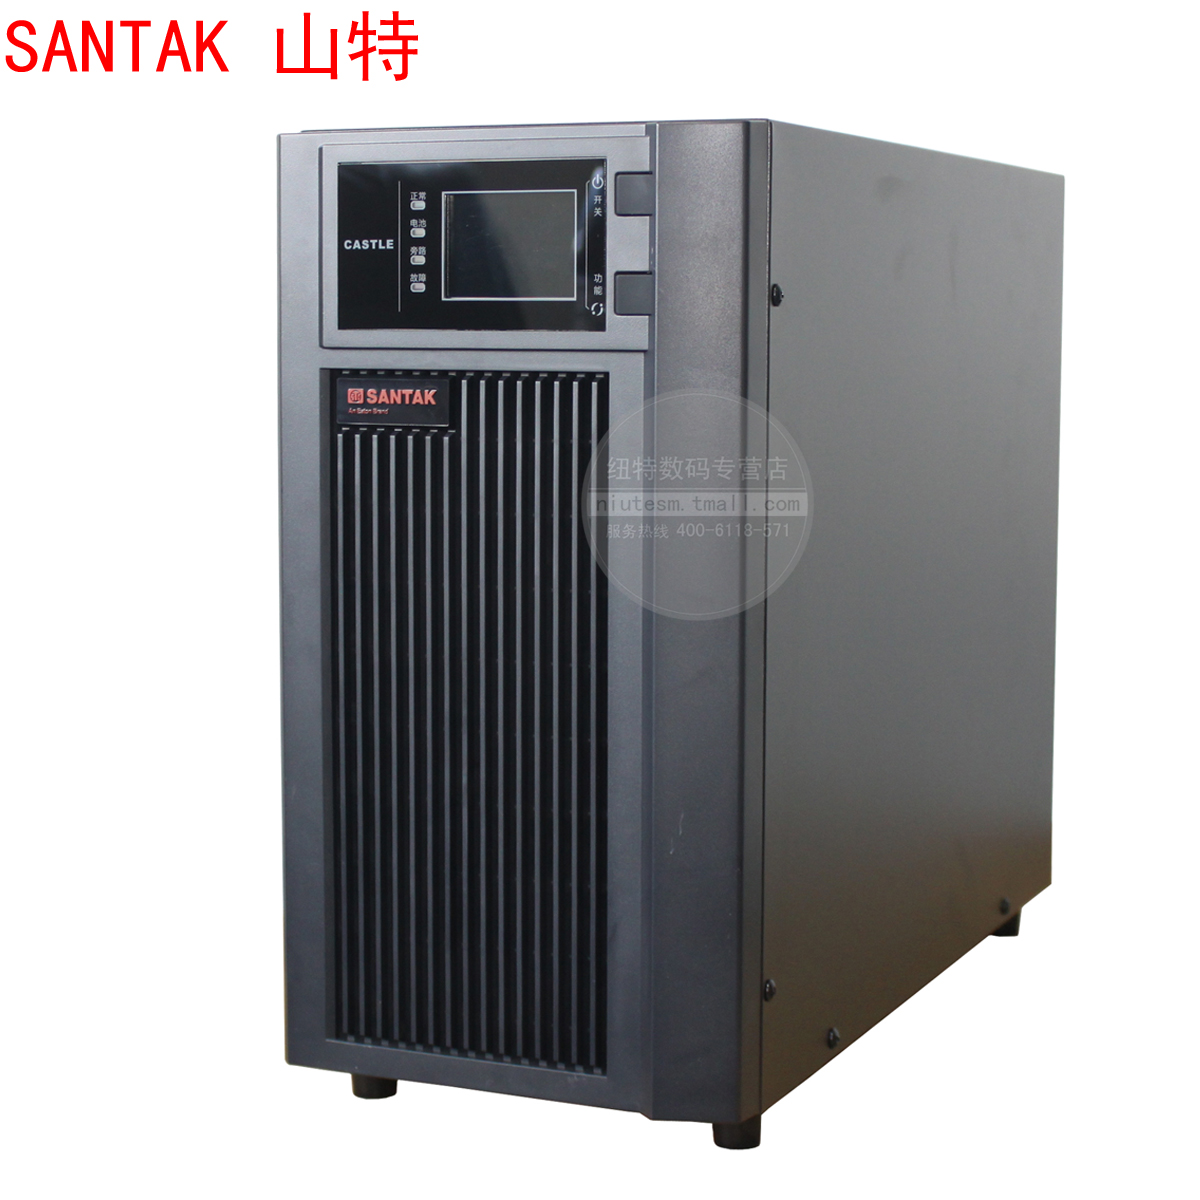 SANTAK SANTAK UPS Uninterruptible Power Supply C6KS 2-Hour 6KVA 5400W Inline Battery Pack